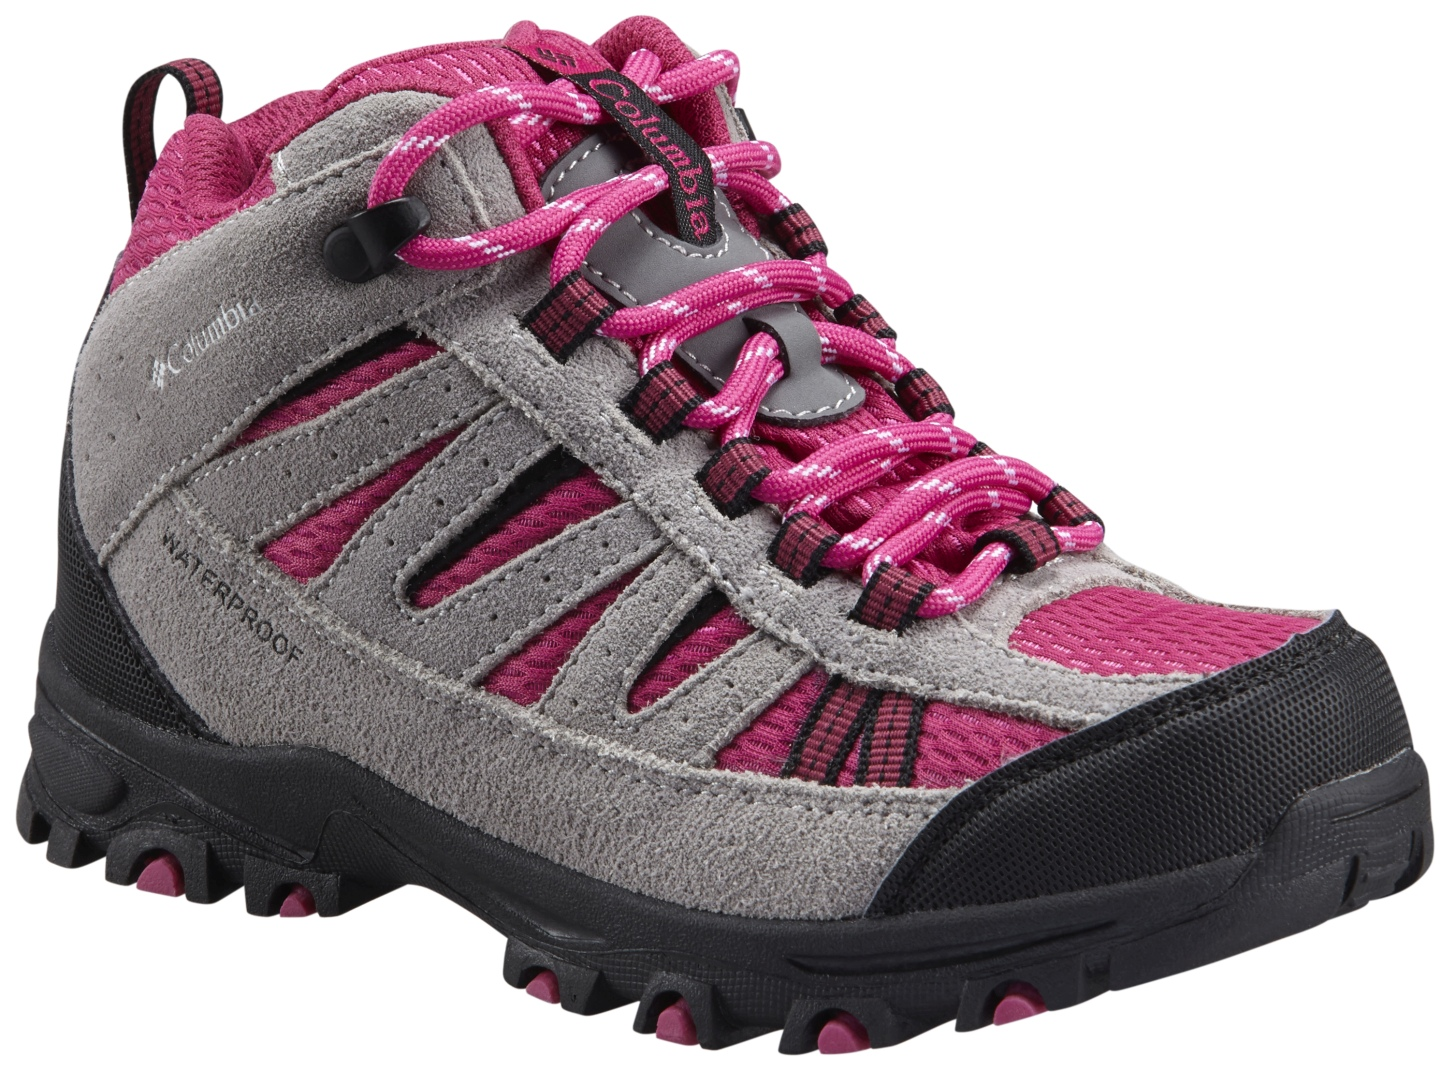 Columbia Pisgah Peak Mid Waterproof Shoes Deep Blush, White-30